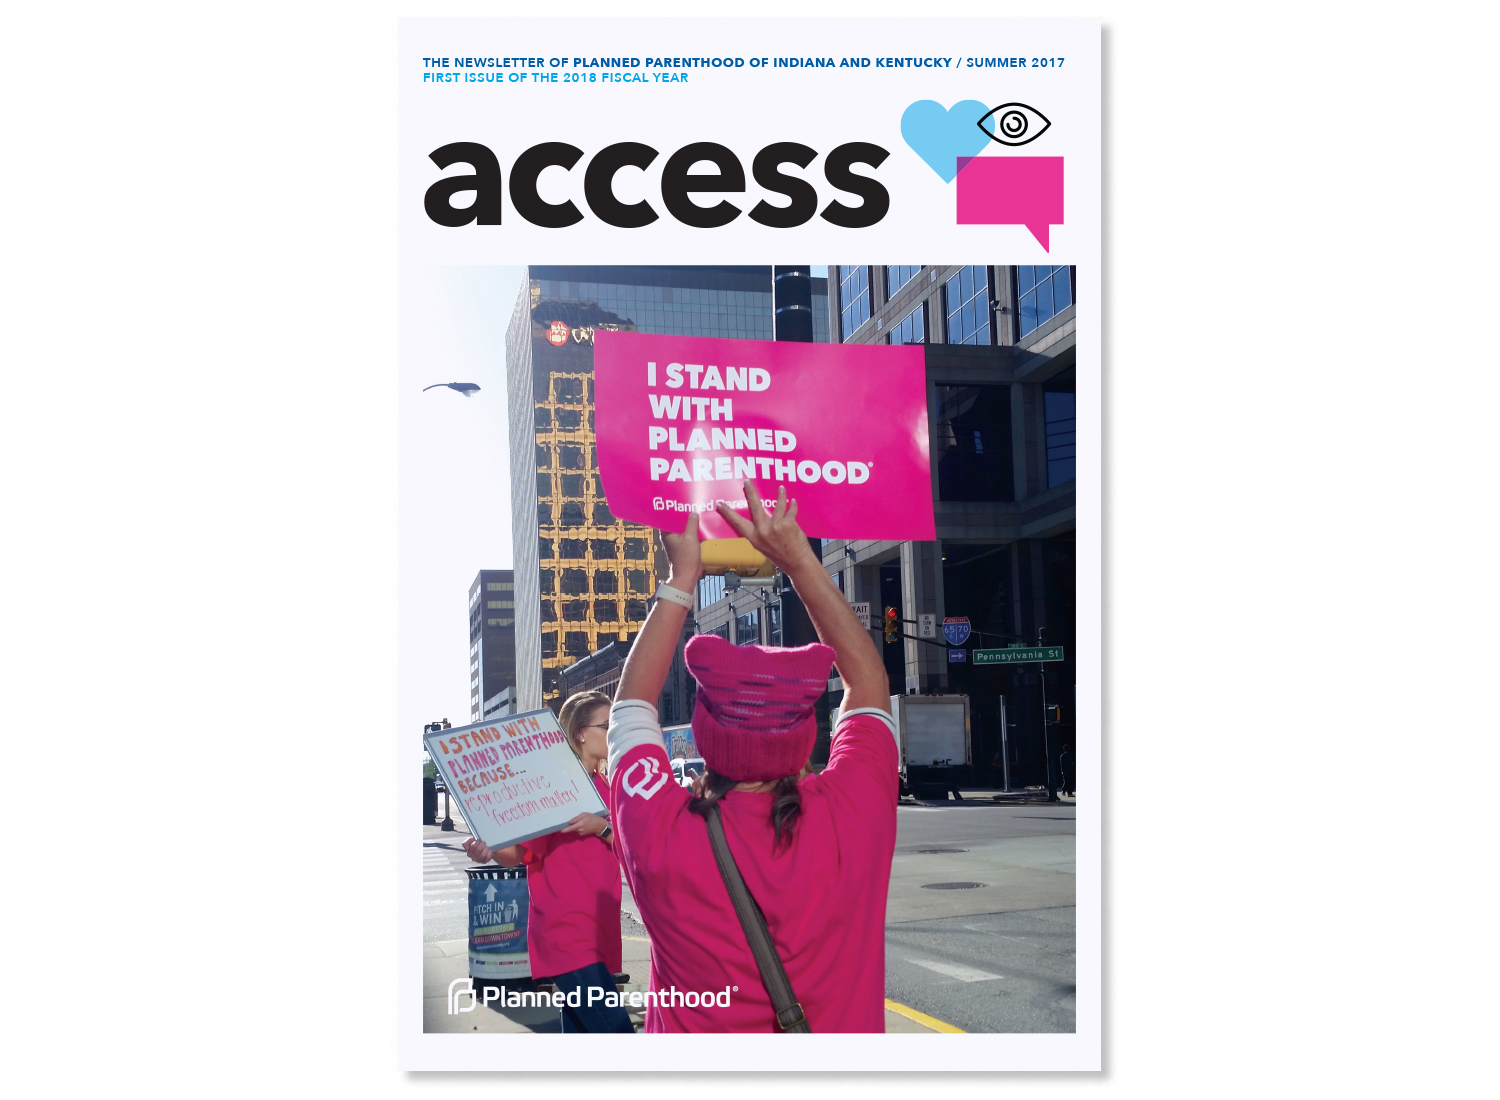 ppink-access-cover.jpg